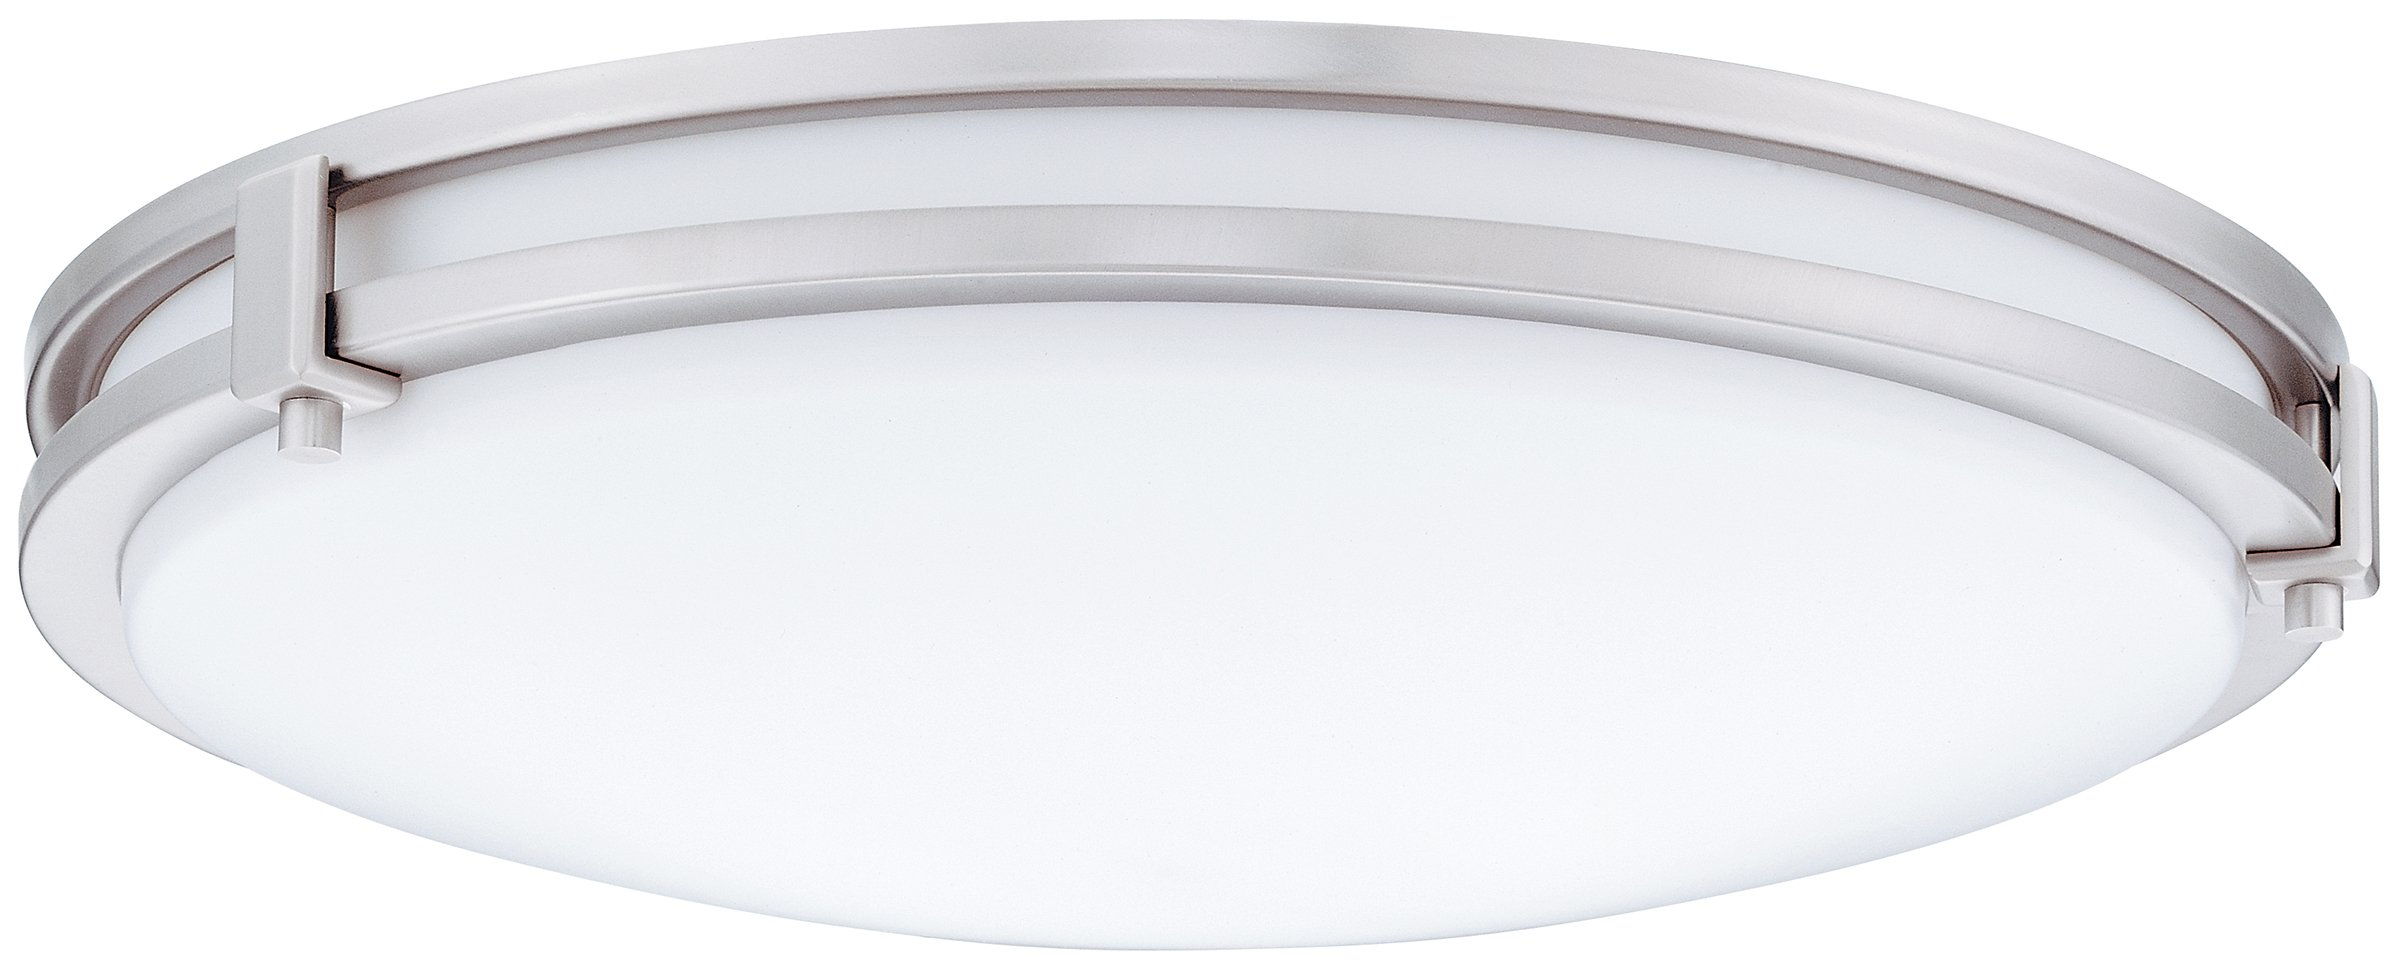 Lithonia Lighting FMSATL 13 14840 BN M4 Antique Brushed Nickel LED Saturn Flushmount